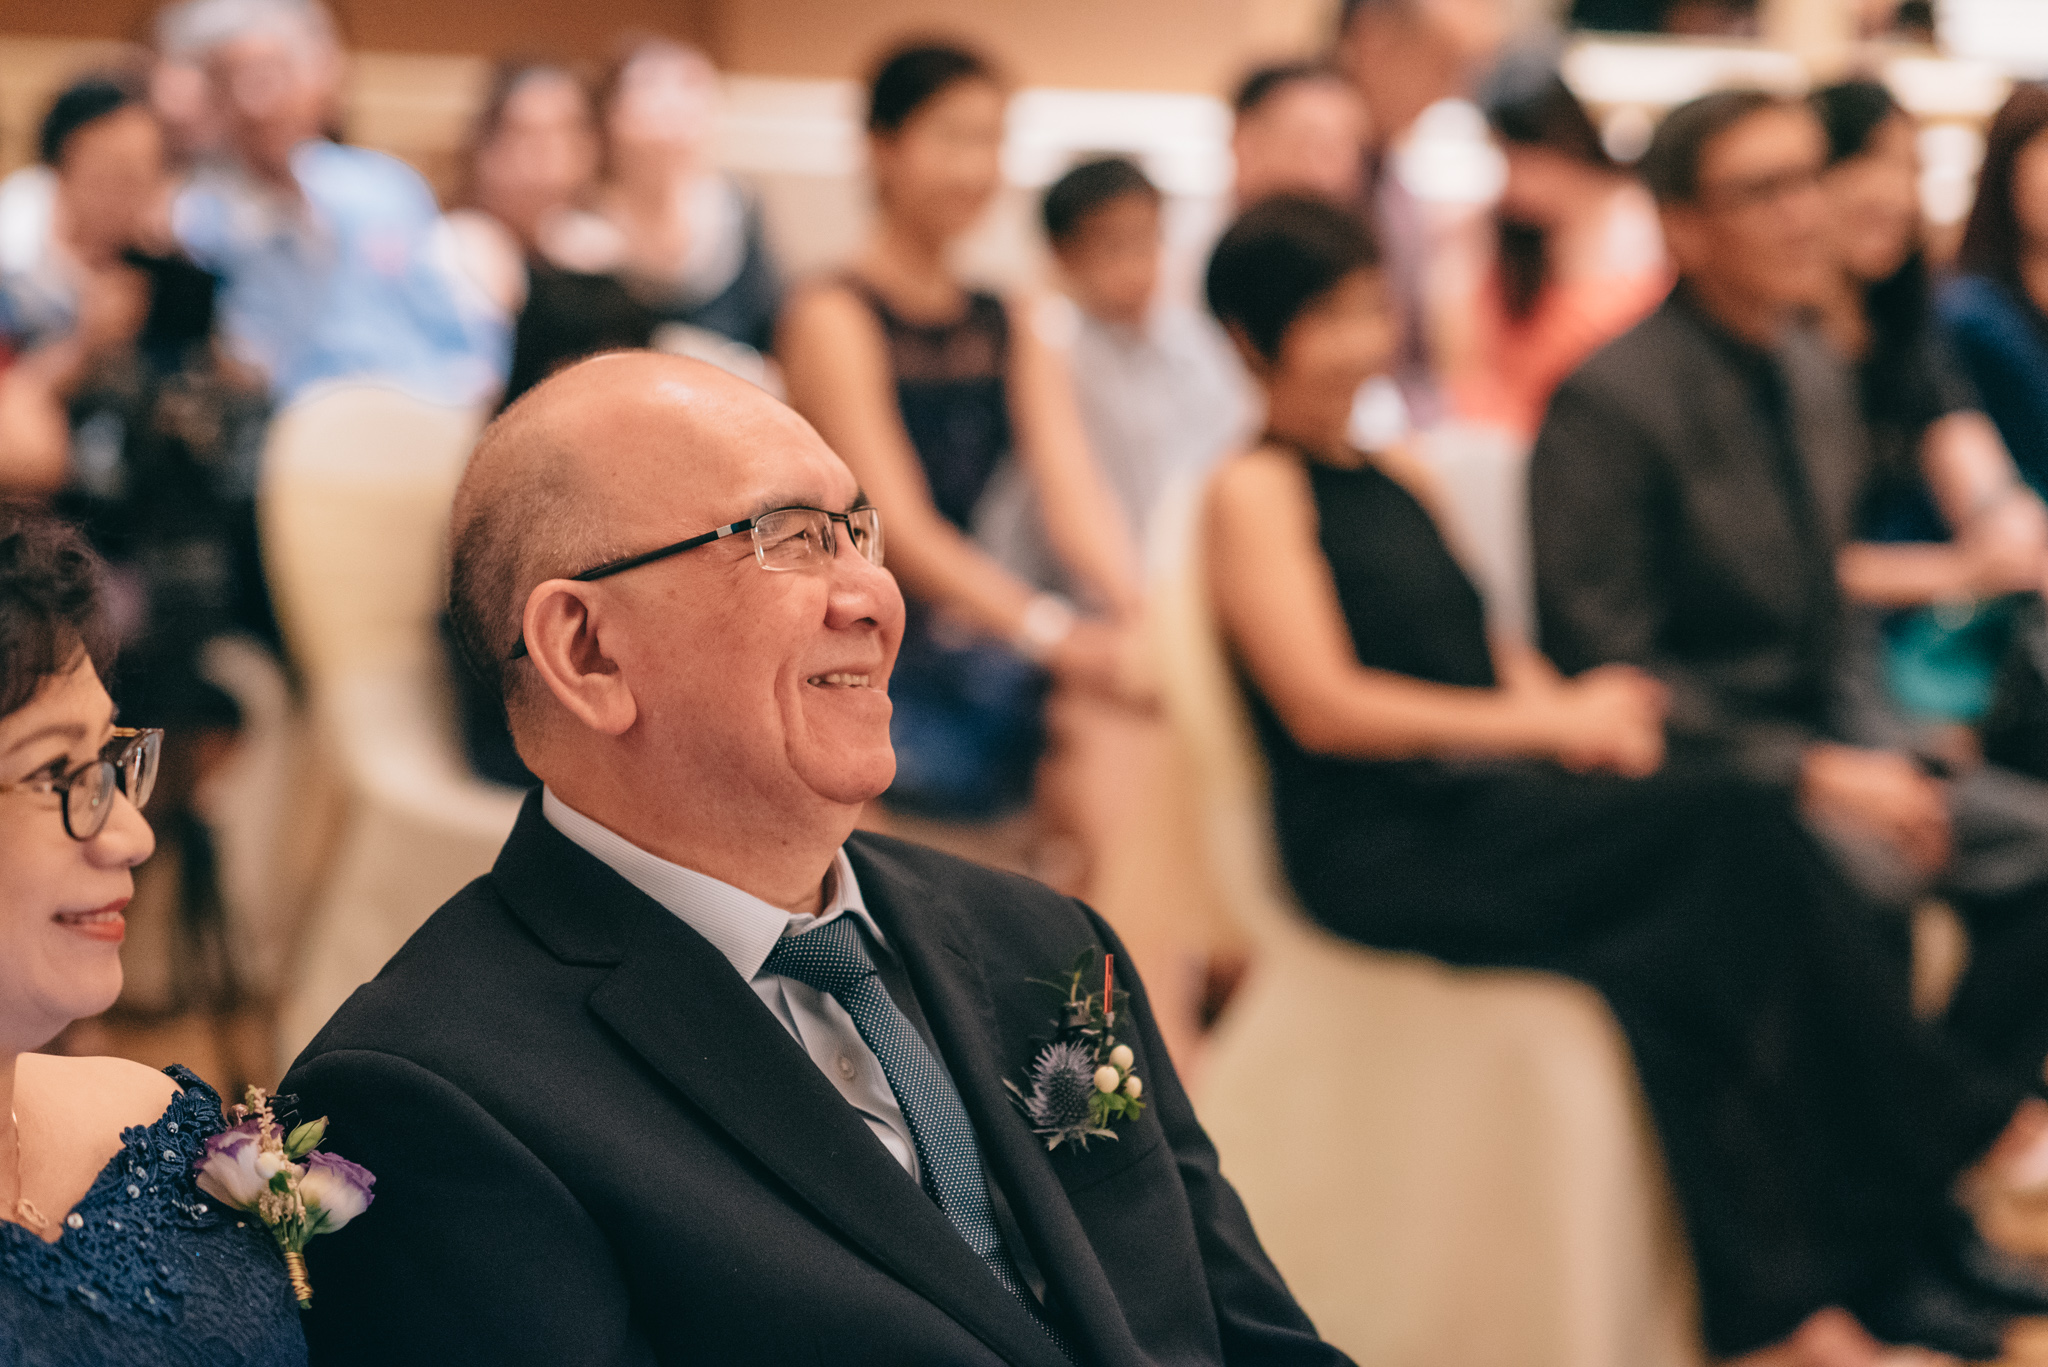 Eunice & Winshire Wedding Day Highlights (resized for sharing) - 138.jpg